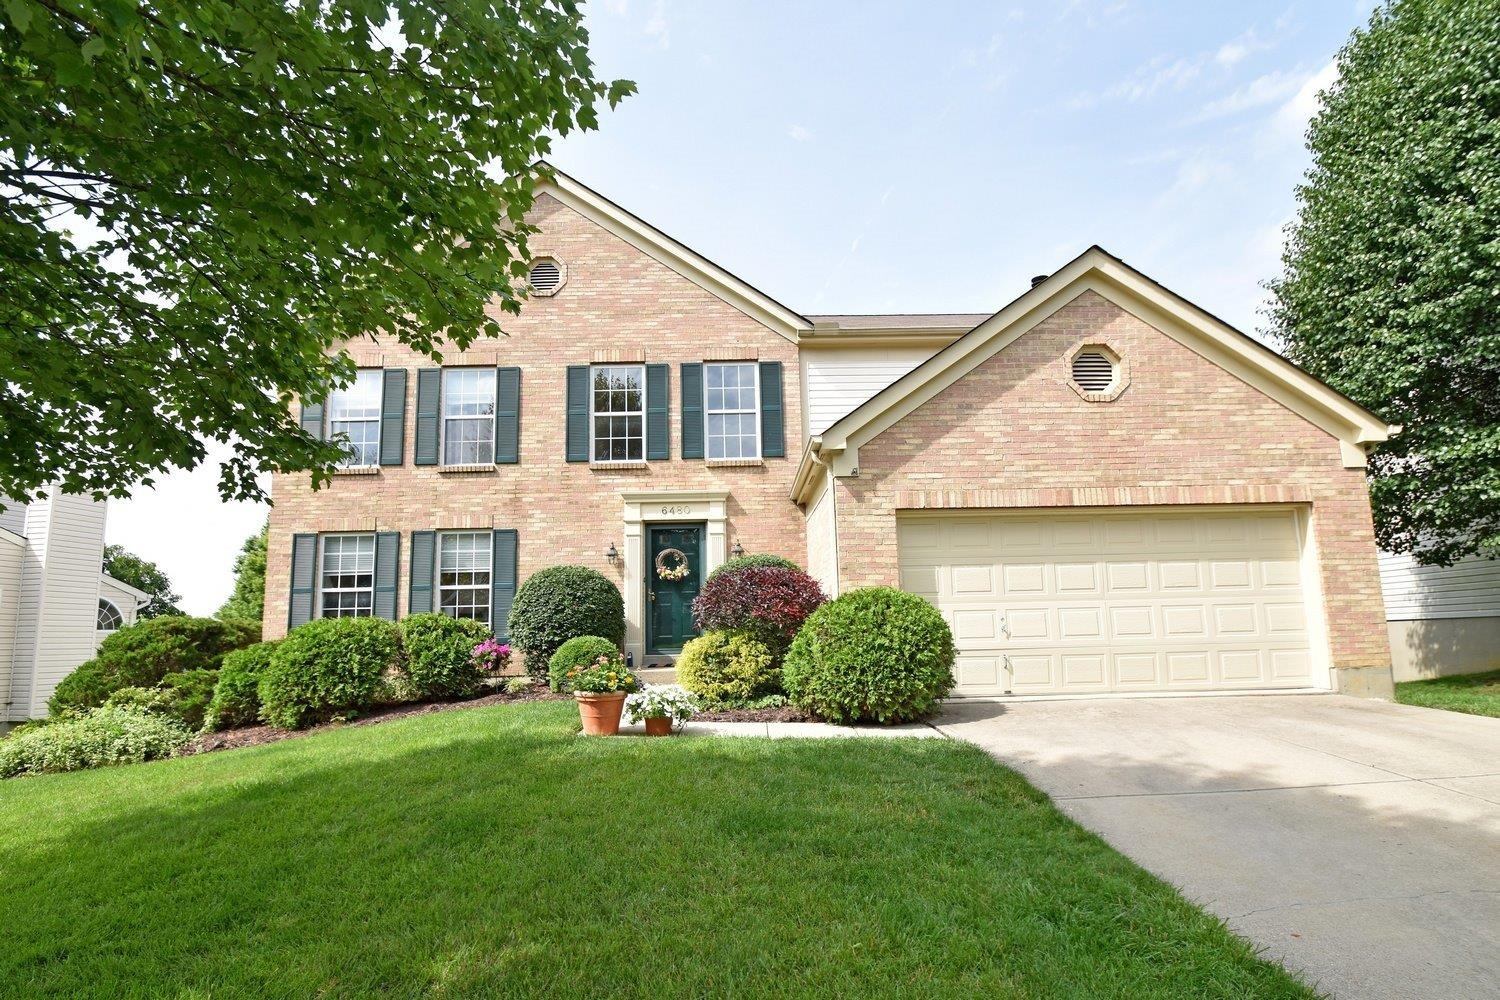 Photo 1 for 6480 Copperleaf Ln Mt. Washington, OH 45230